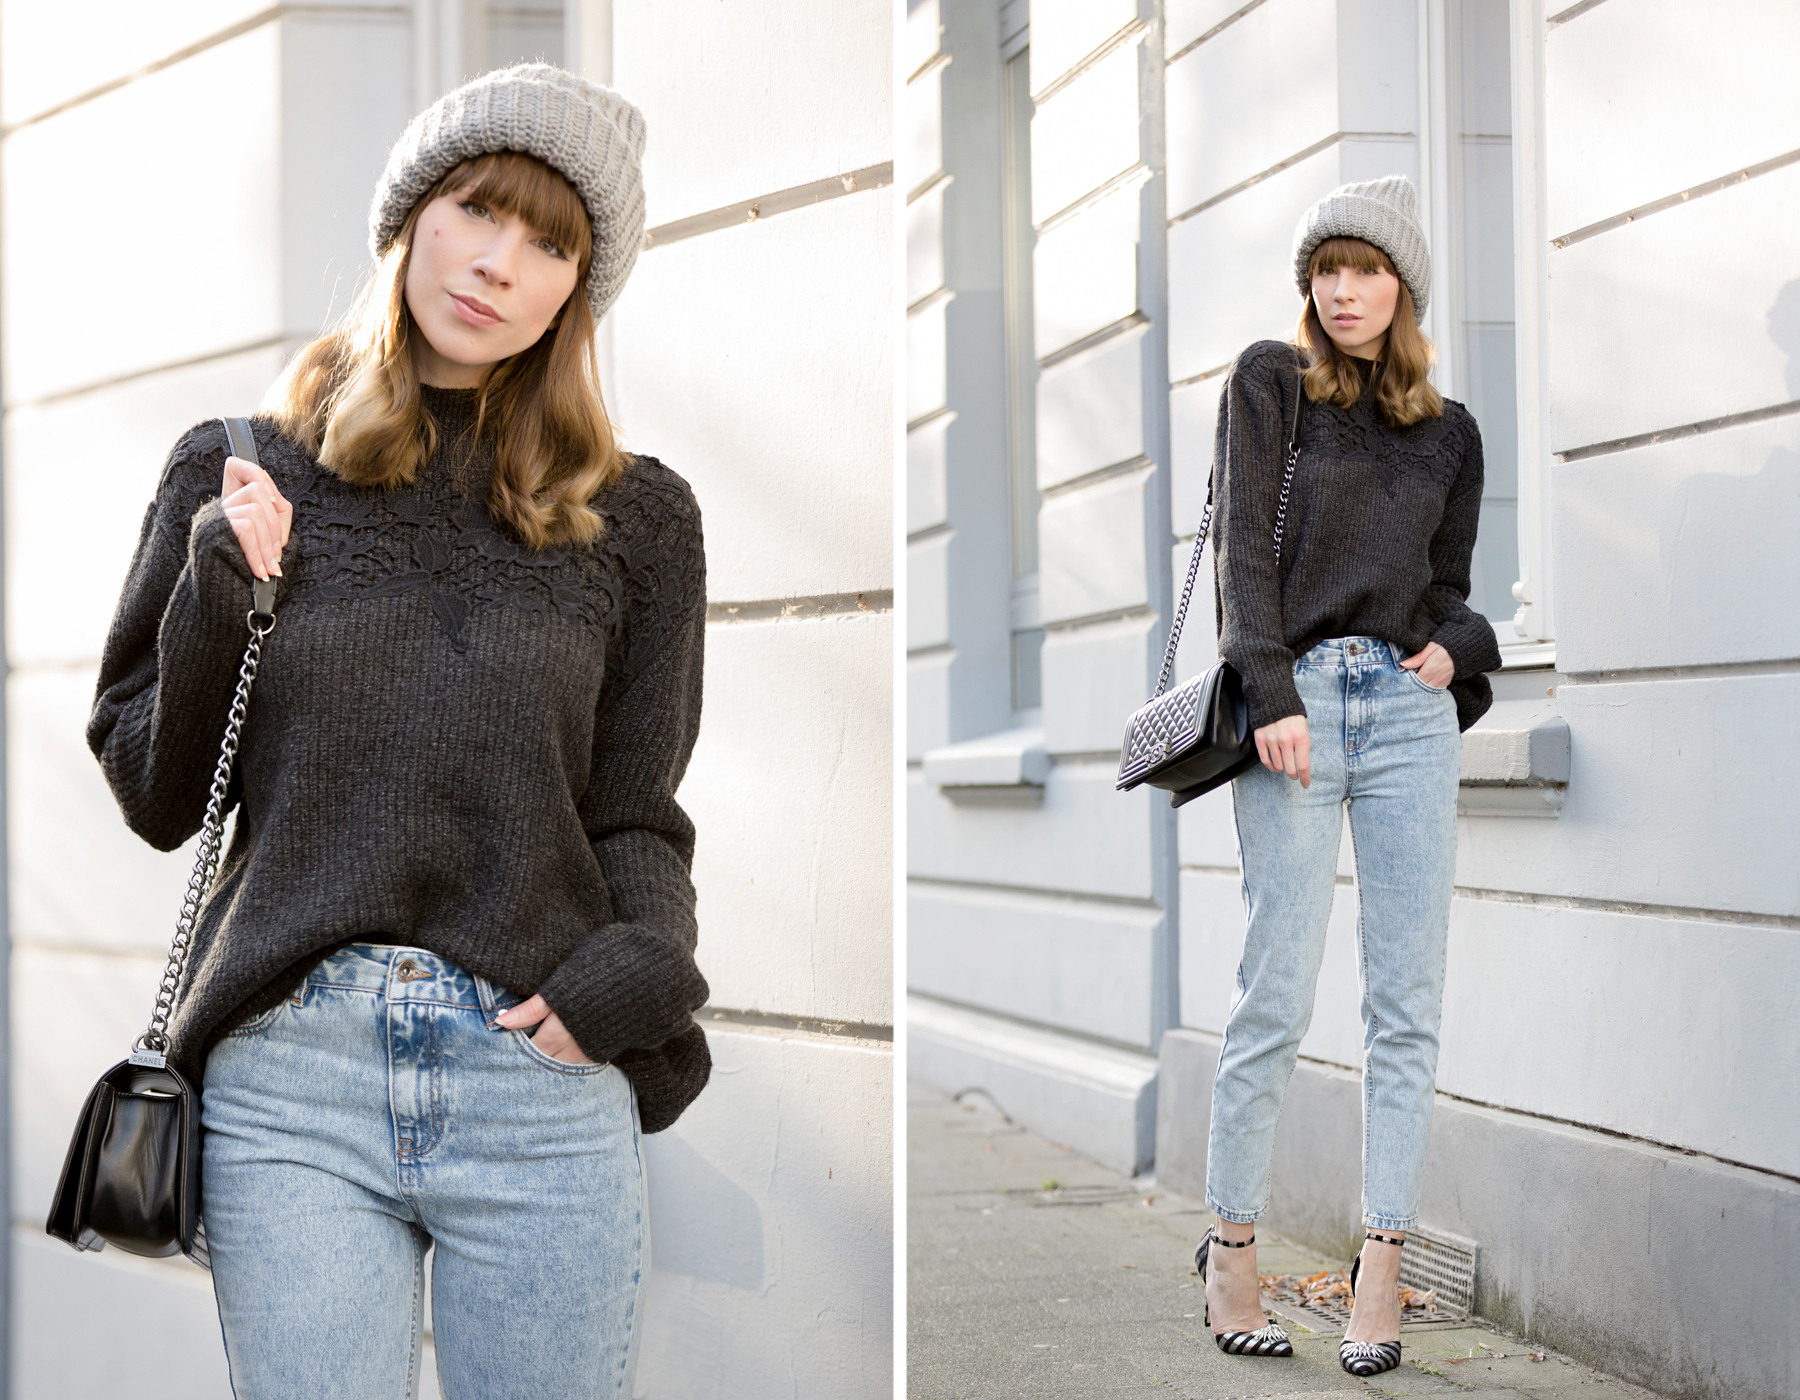 ootd outfit styling mom jeans momjeans pull&bear grey knit knitwear lace chanel chanel boybag leboy asos striped high heels glamour look relax cozy winter düsseldorf cats & dogs blog ricarda schernus fashionblogger 2